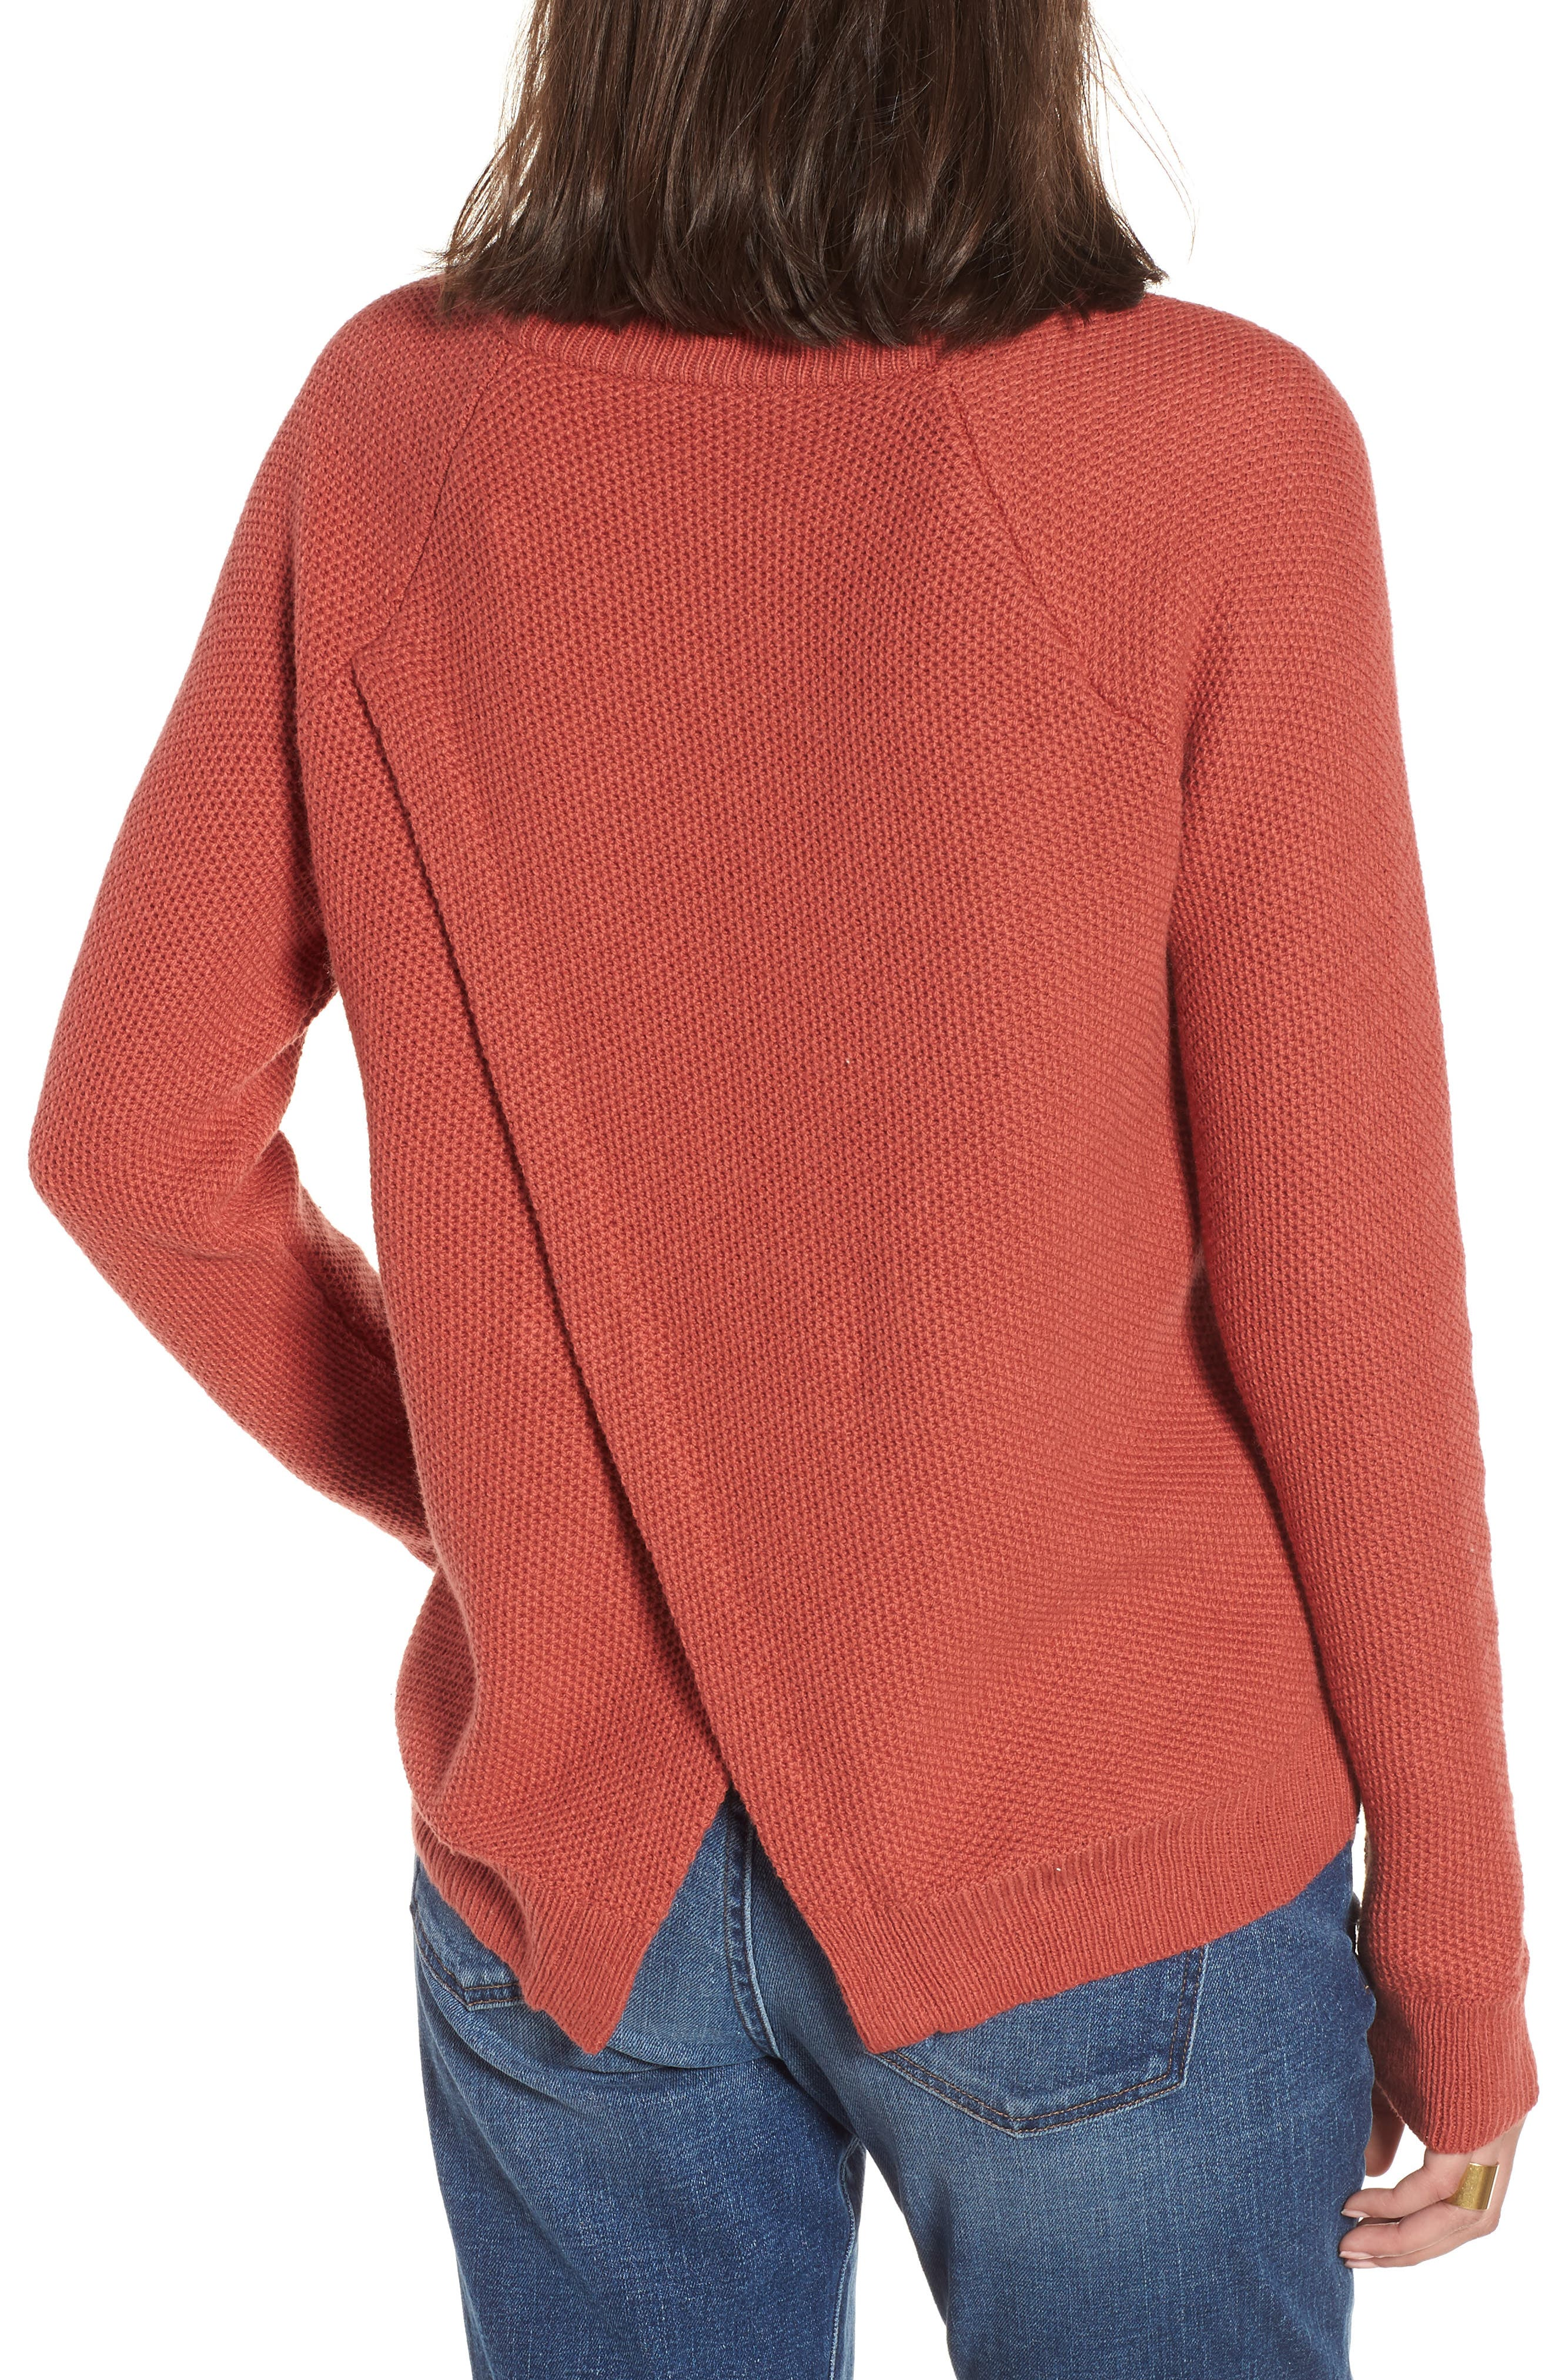 Province Cross Back Knit Pullover,                             Alternate thumbnail 2, color,                             Spiced Rose